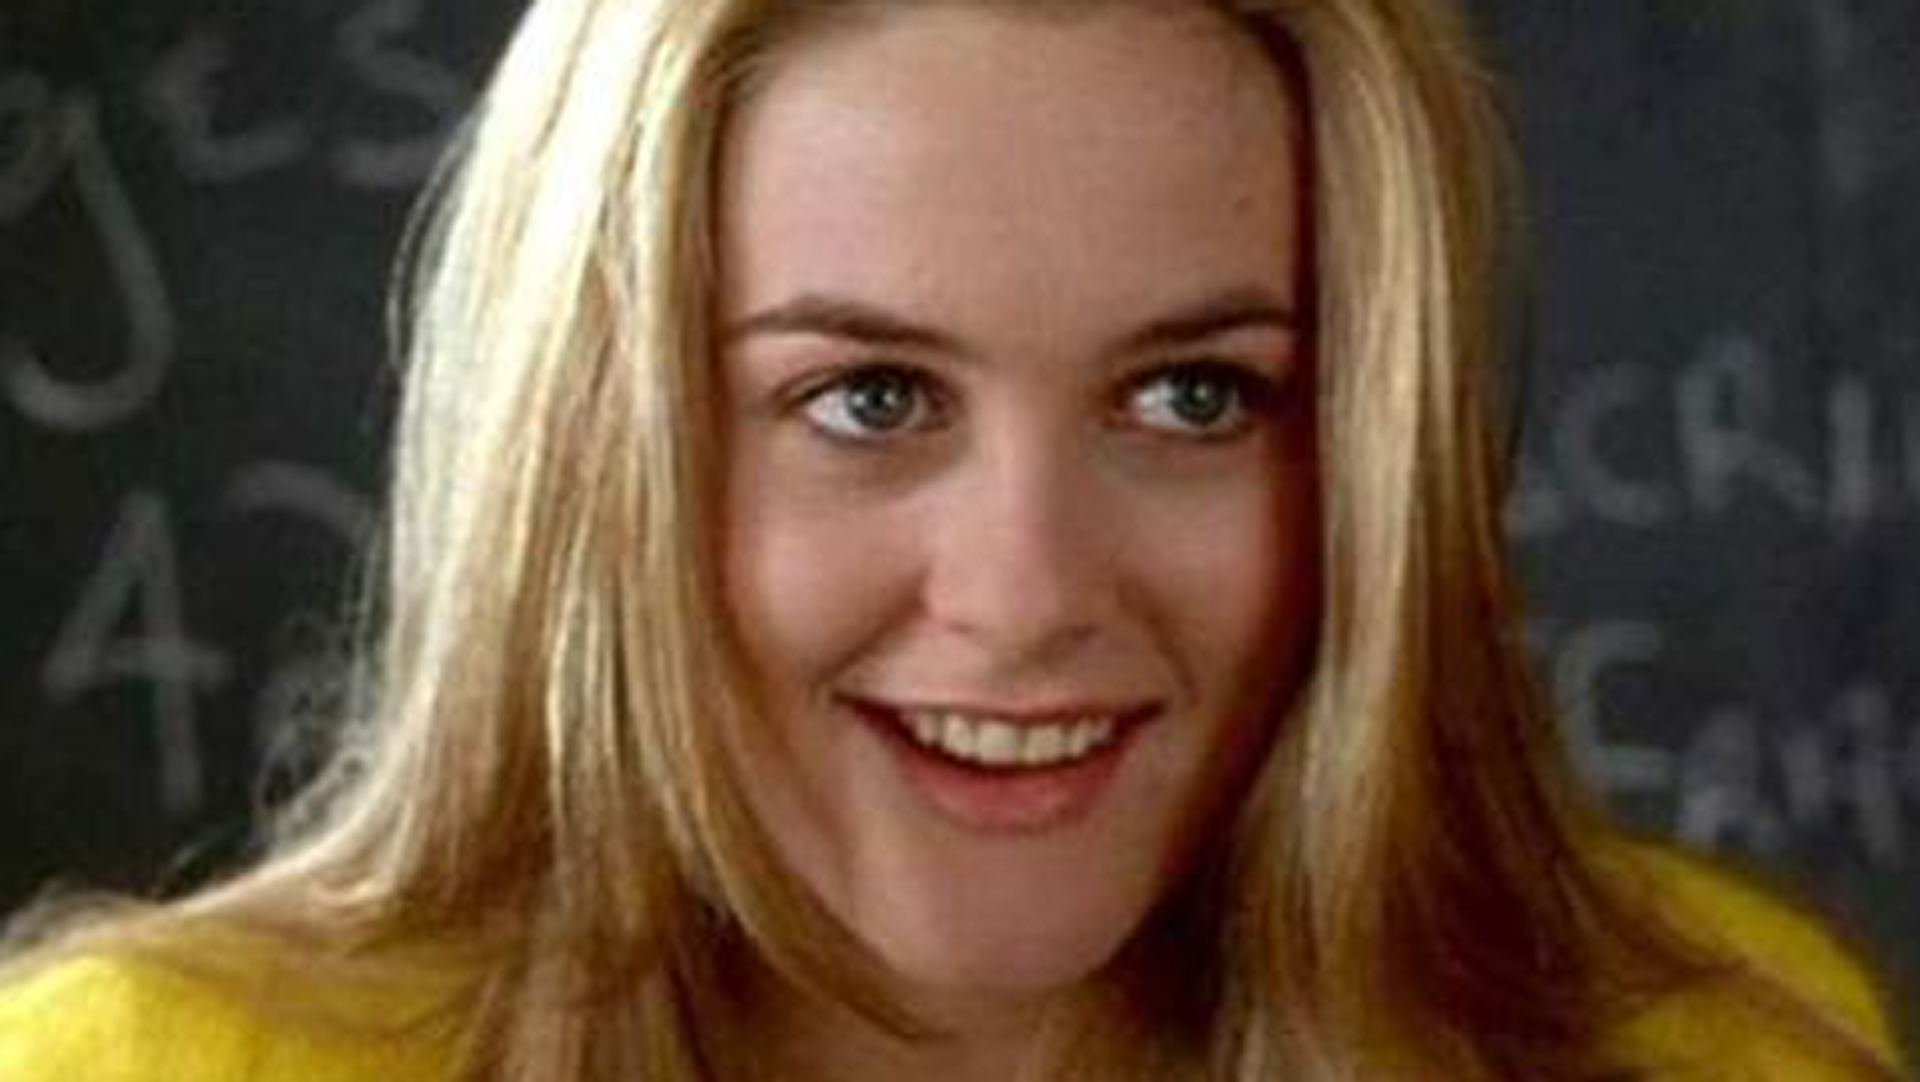 The real reason Alicia Silverstone's career was ruined